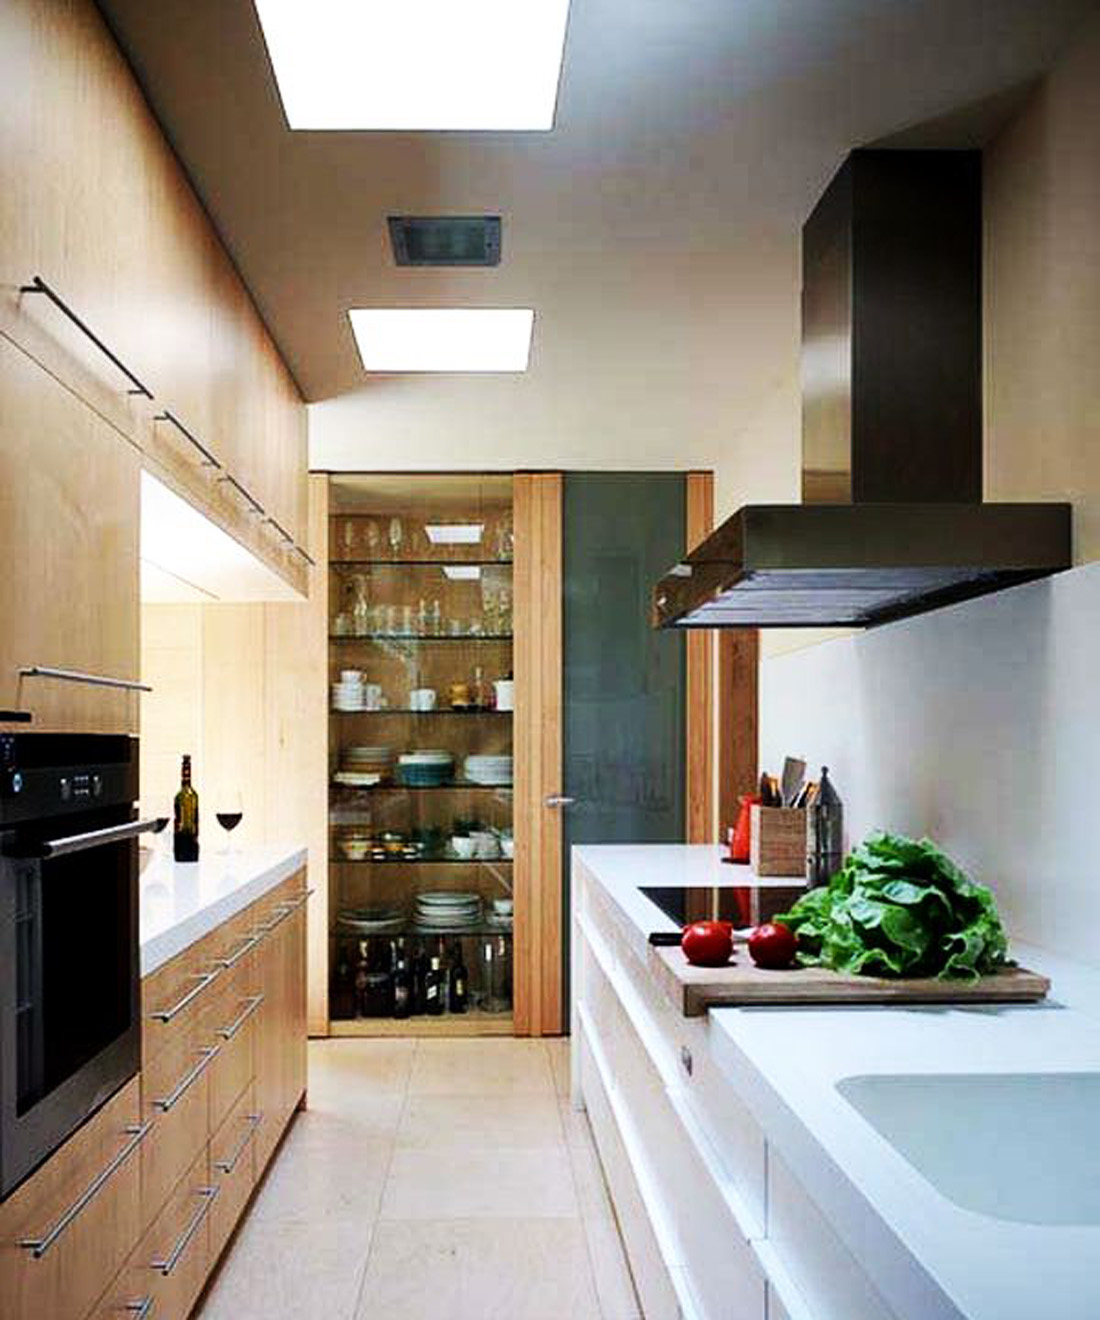 Small Kitchen Remodel Ideas For 2016: 25 Modern Small Kitchen Design Ideas